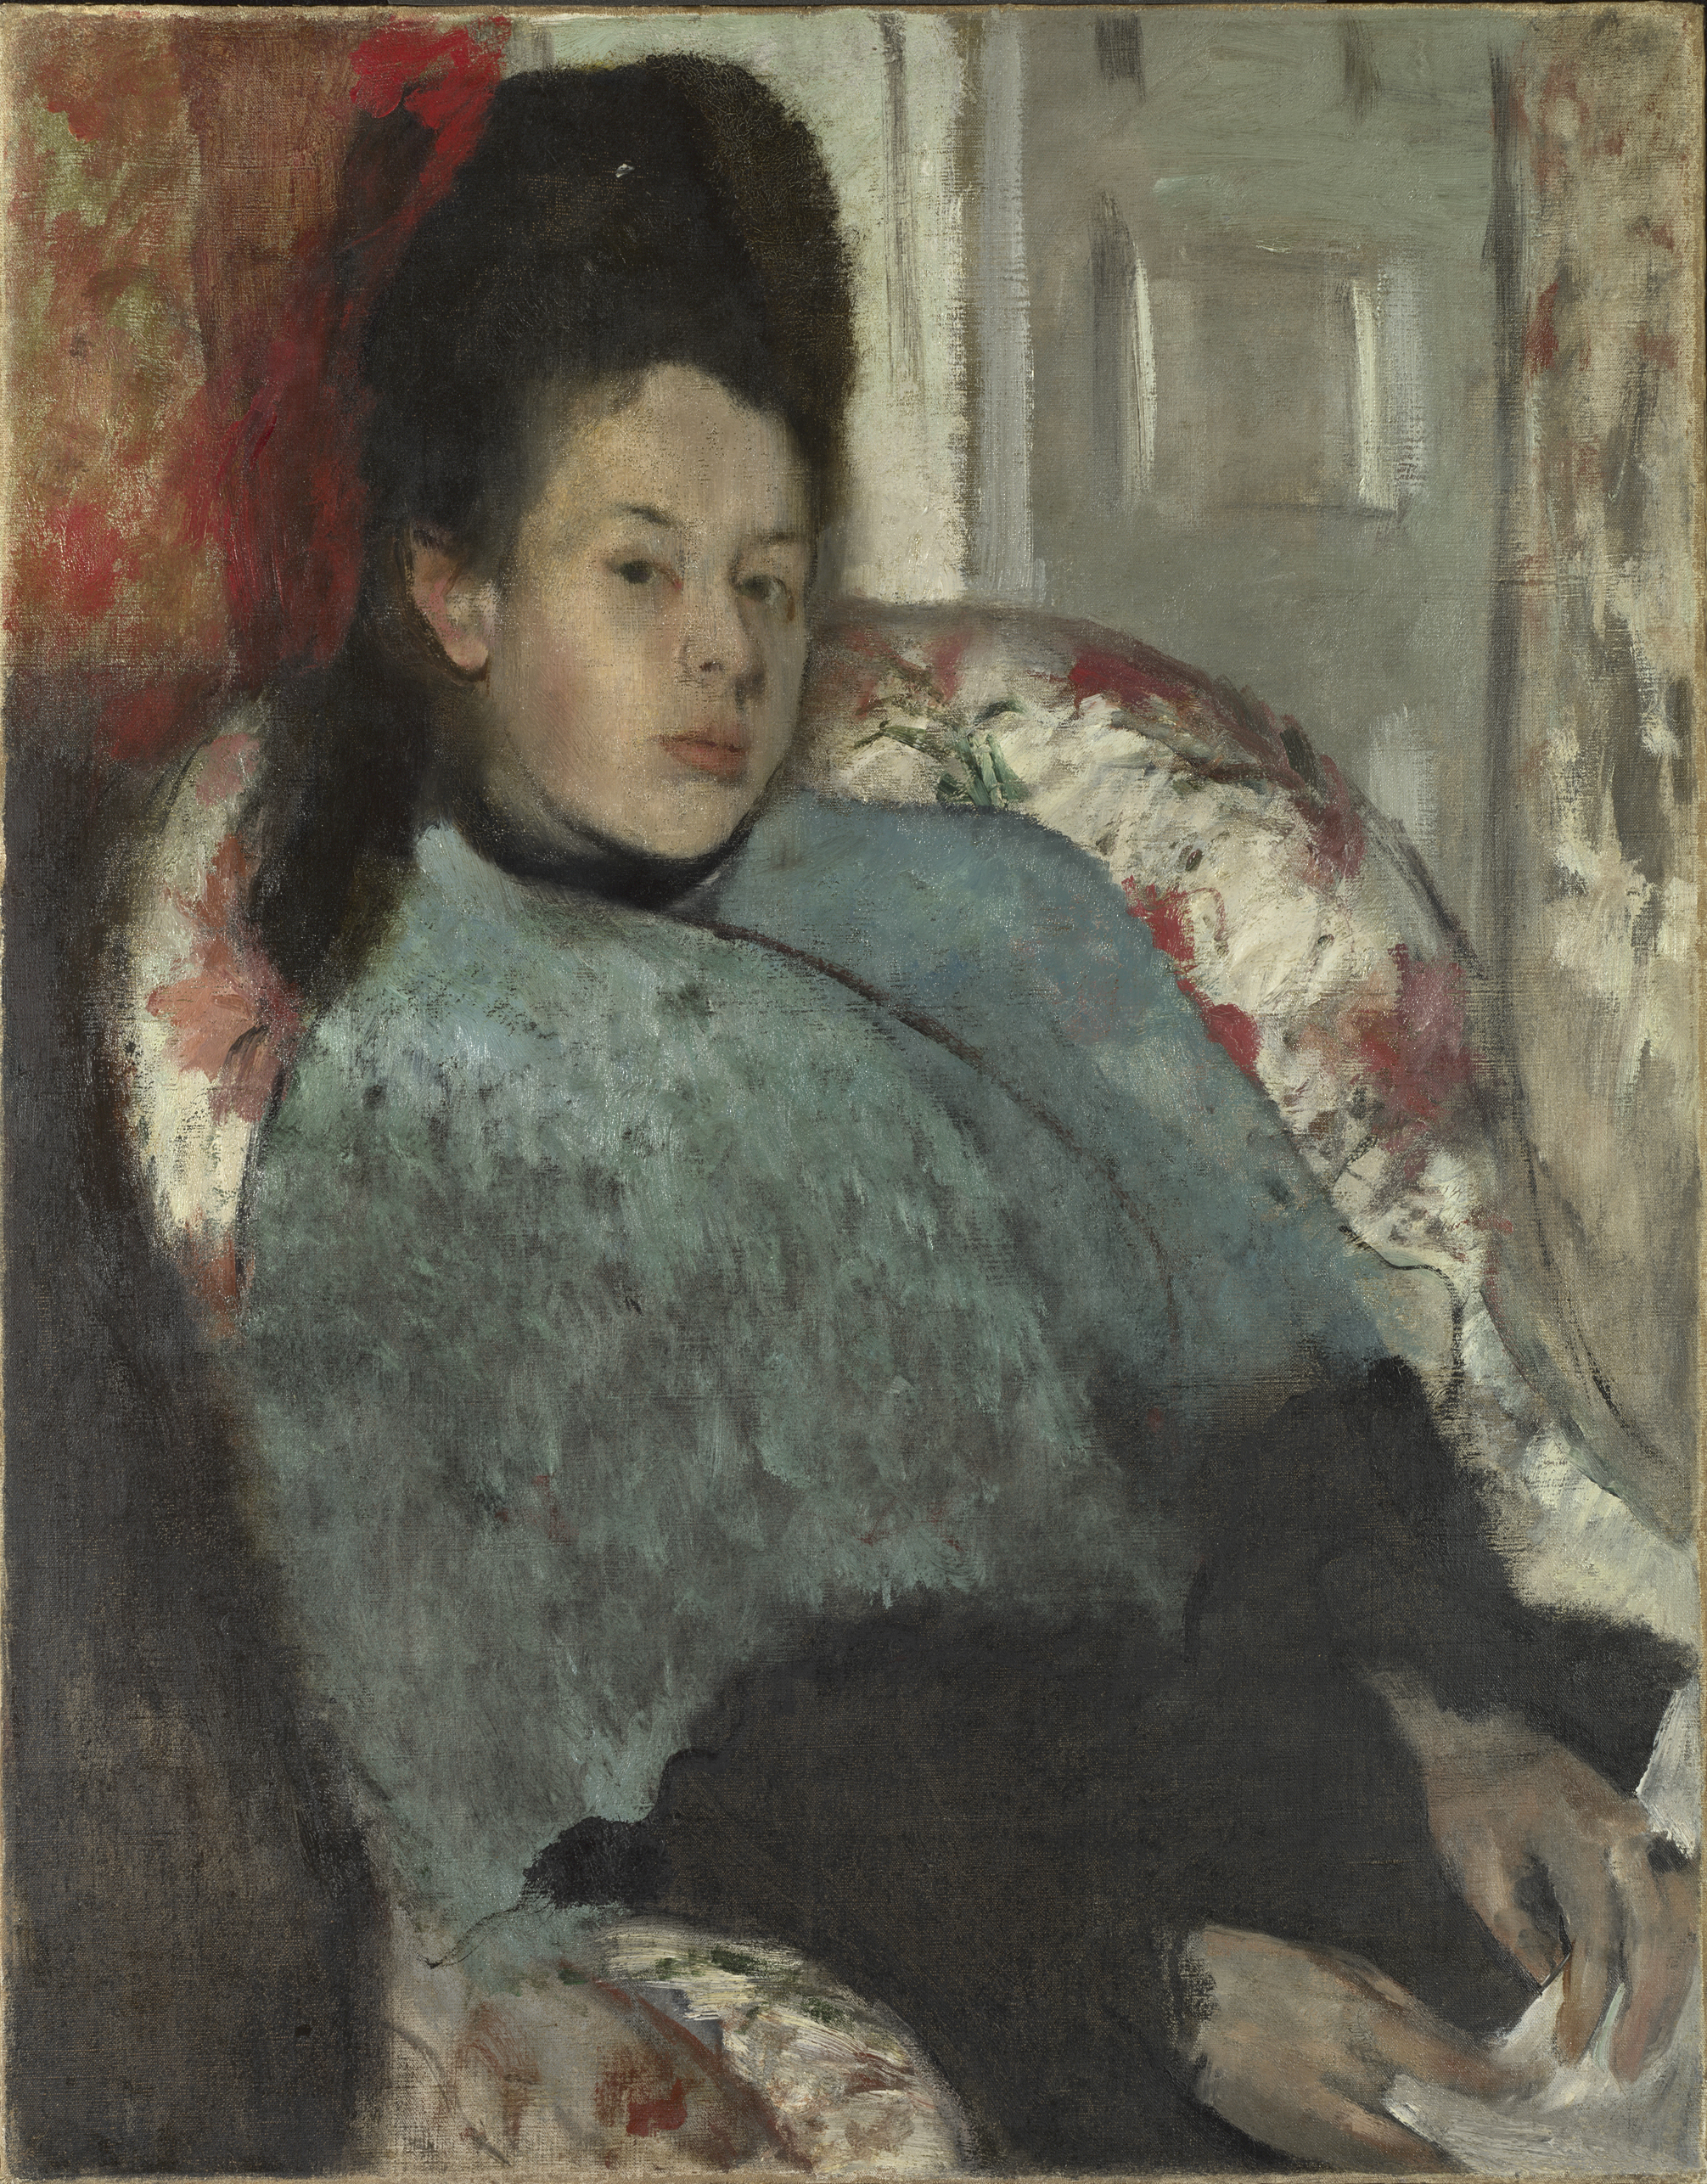 Portrait of Elena Carafa - Hilaire-Germain-Edgar Degas, c. 1875